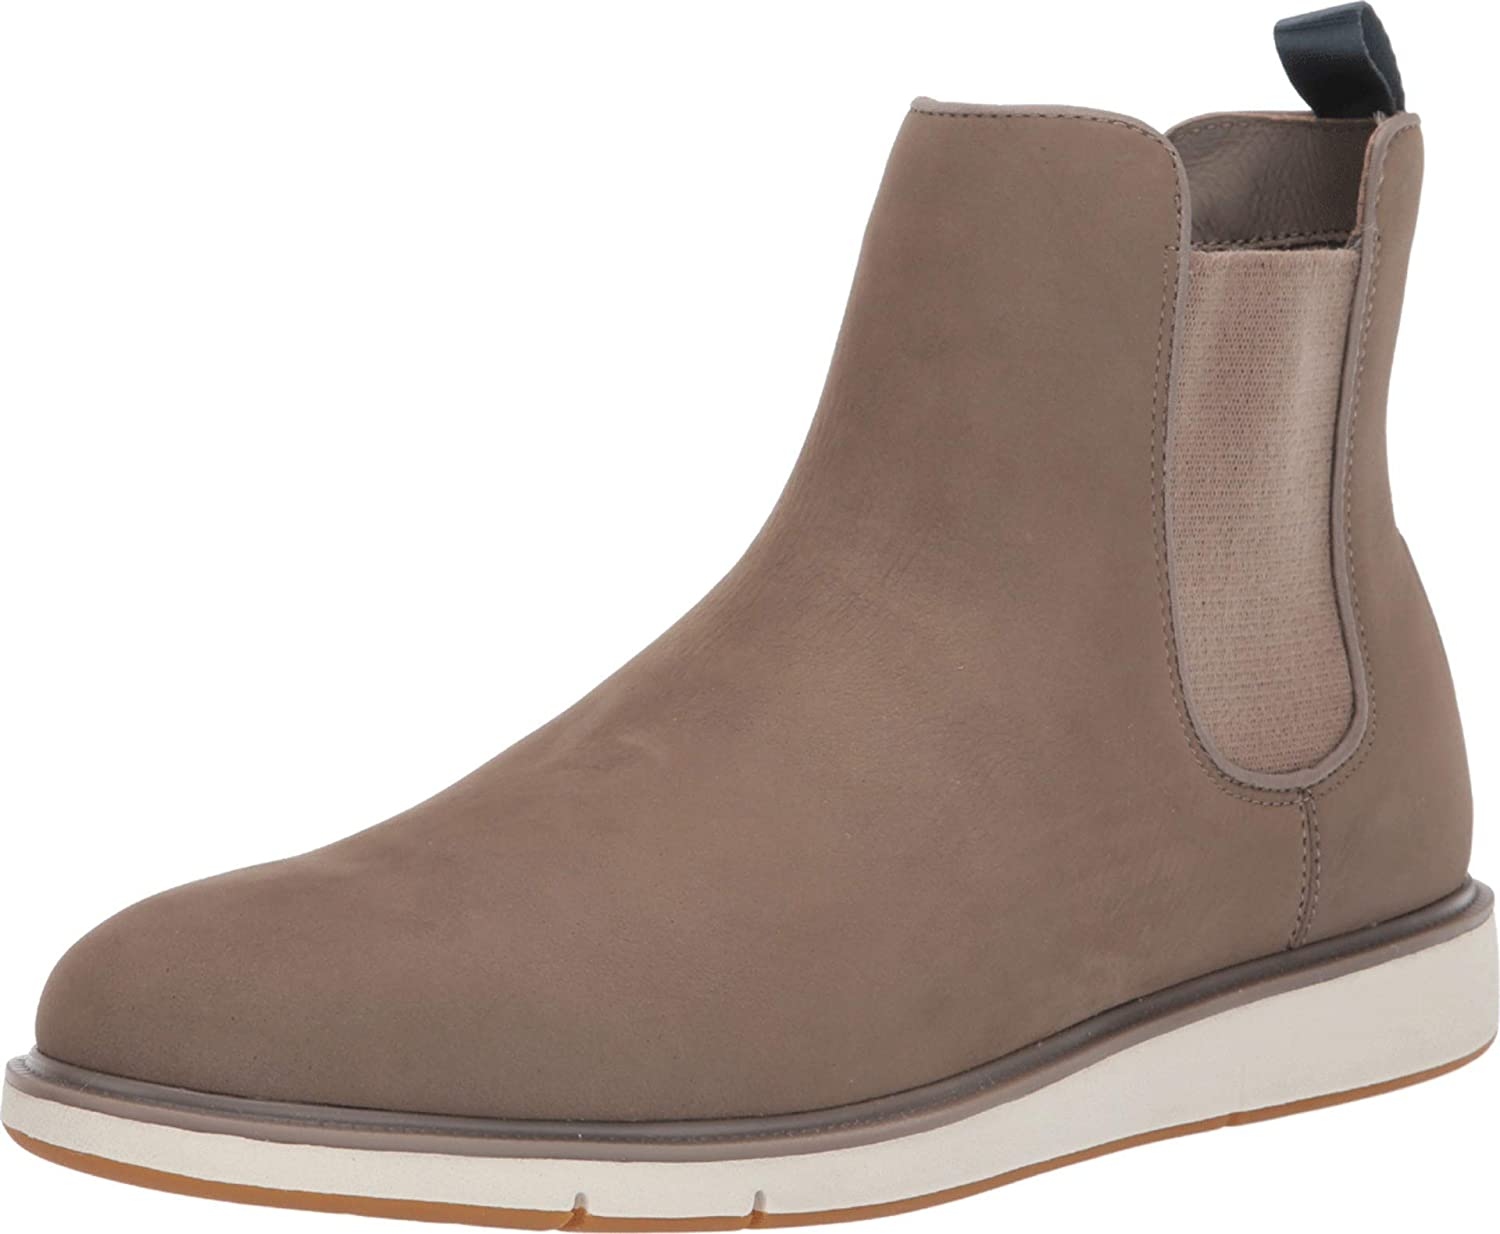 SWIMS Men's Motion SALENEW very popular Chelsea Boots Max 84% OFF